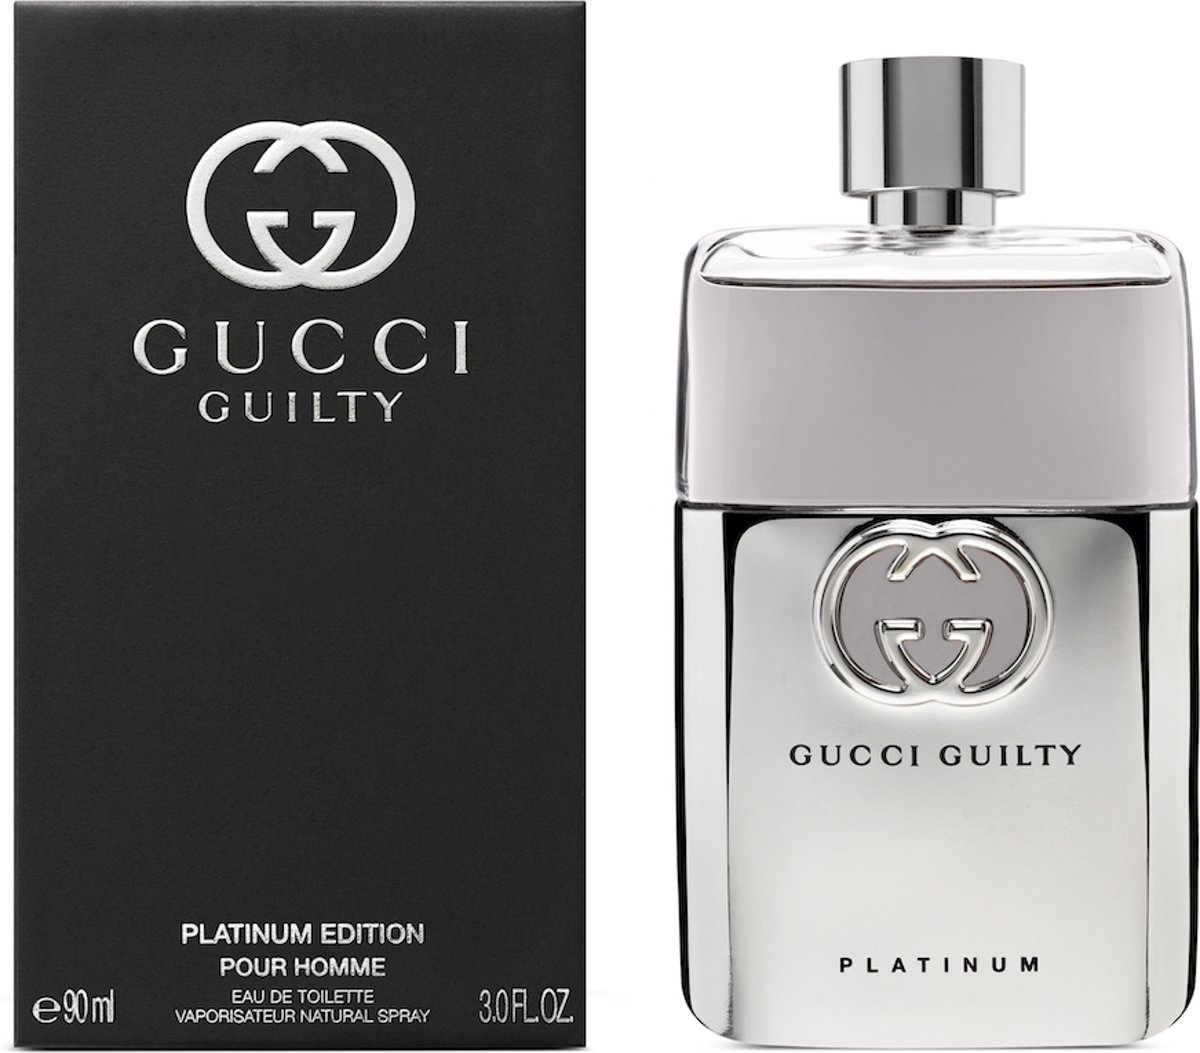 Gucci Guilty Platinum M - 90ml - Eau de toilette